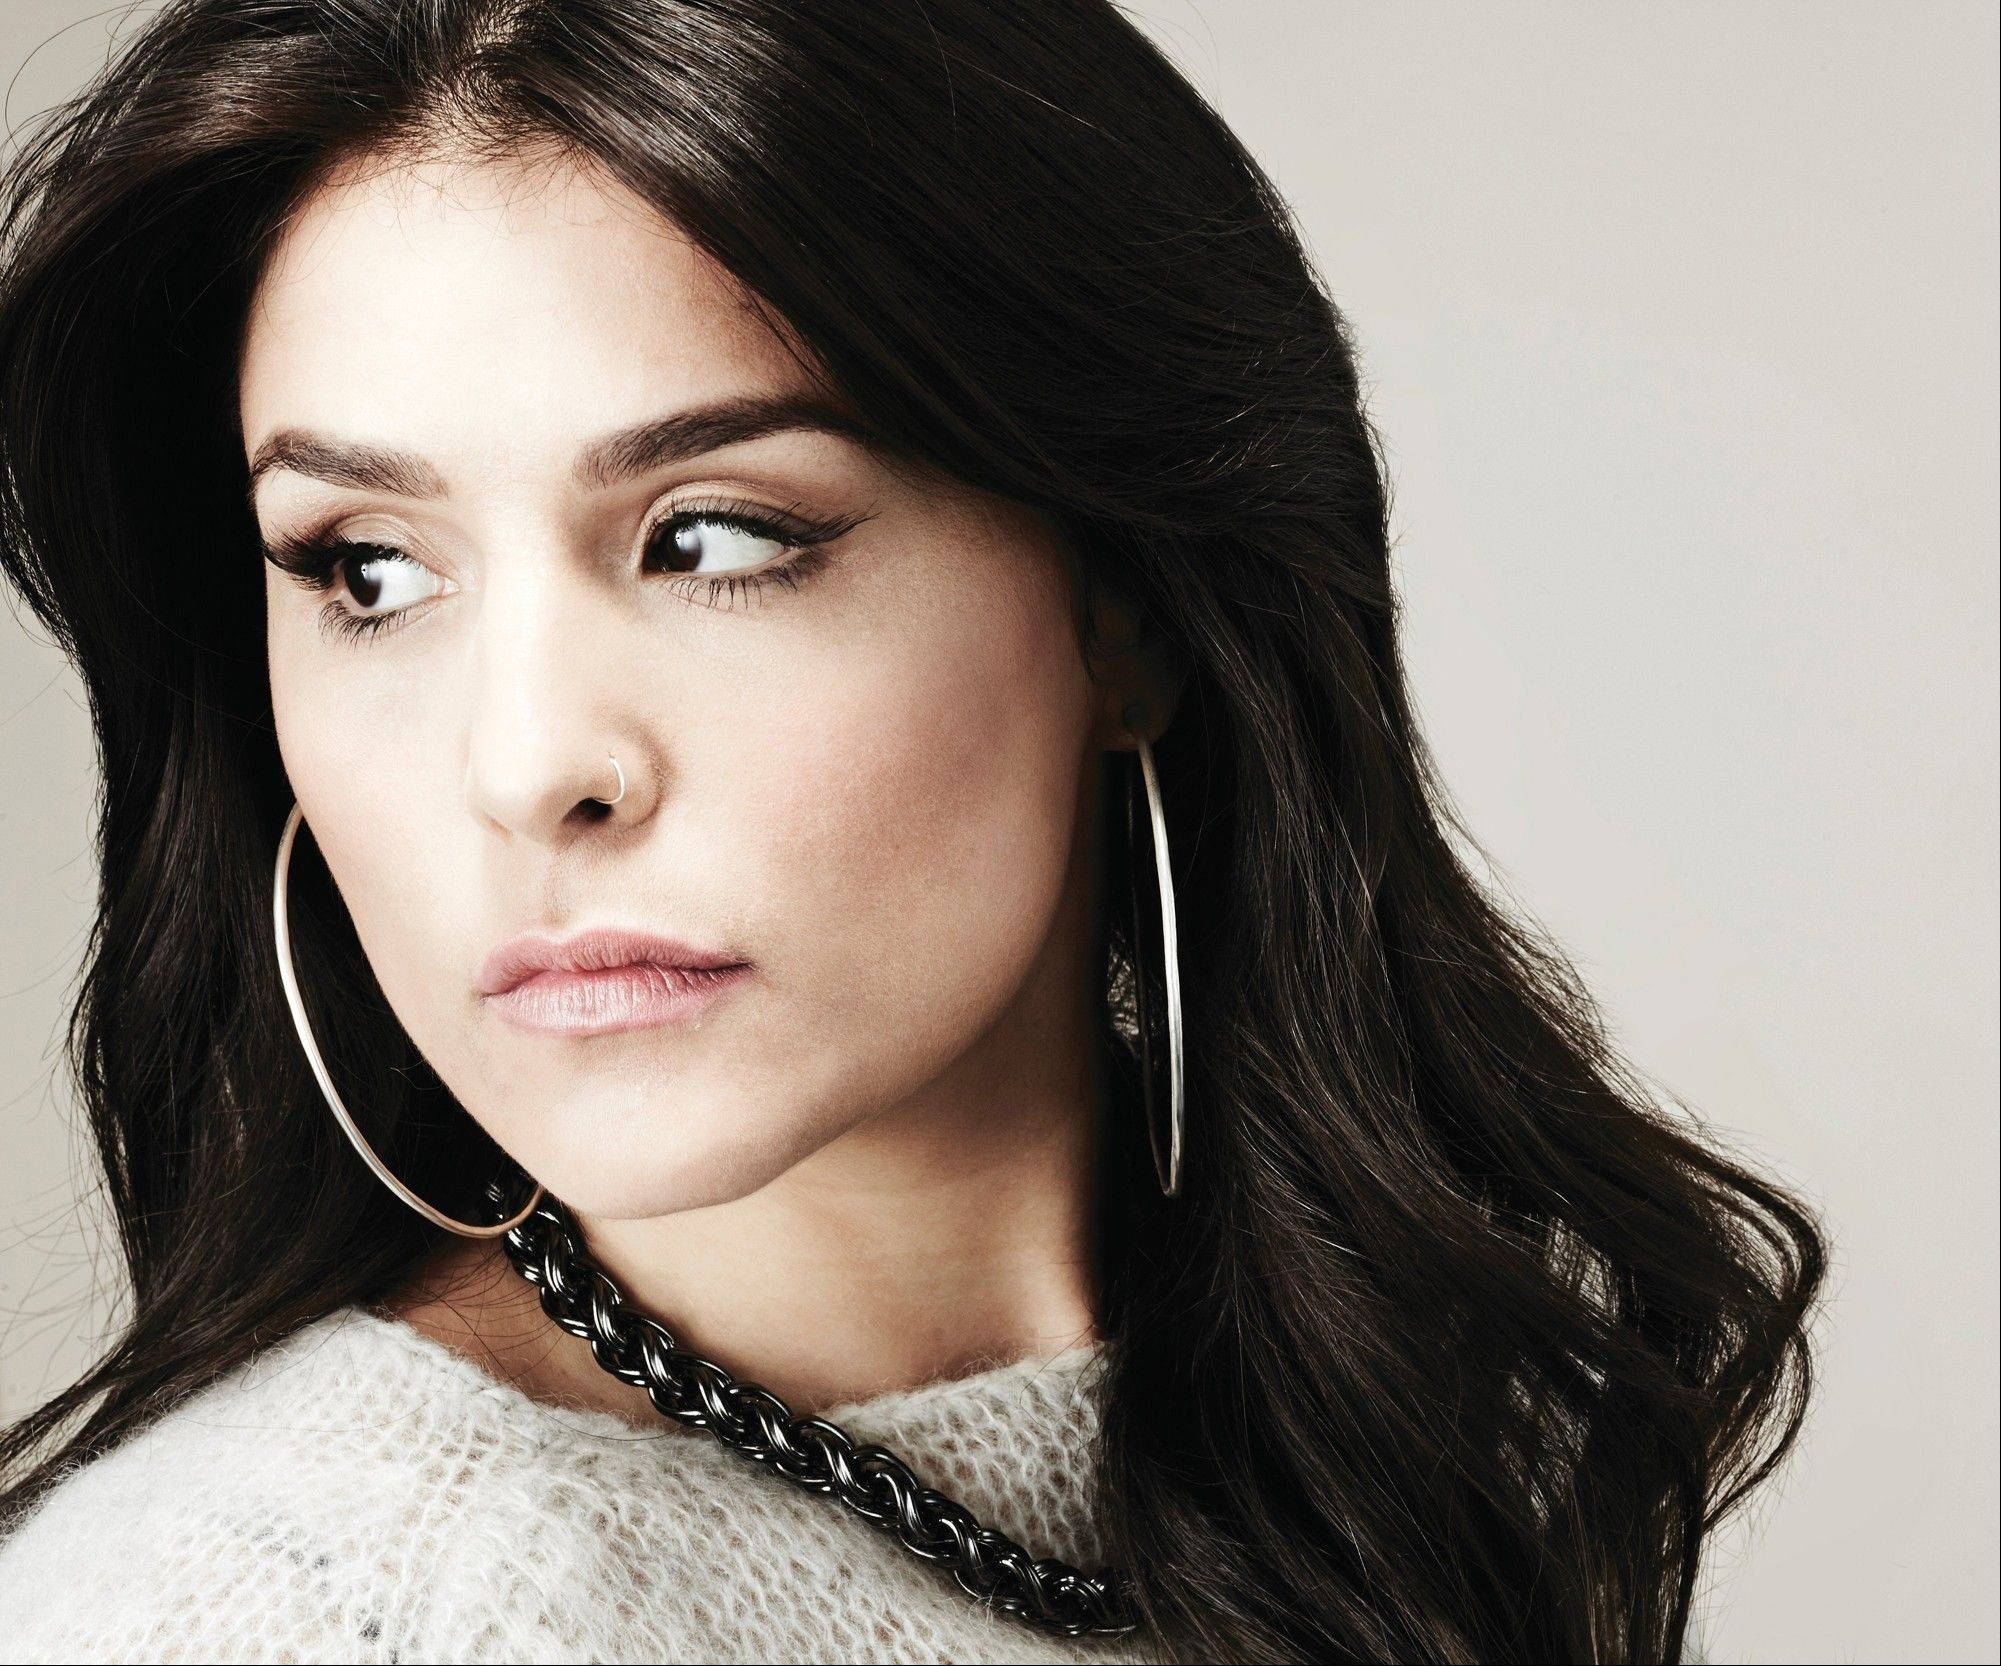 British R&B singer Jessie Ware hopes to find success in U.S.